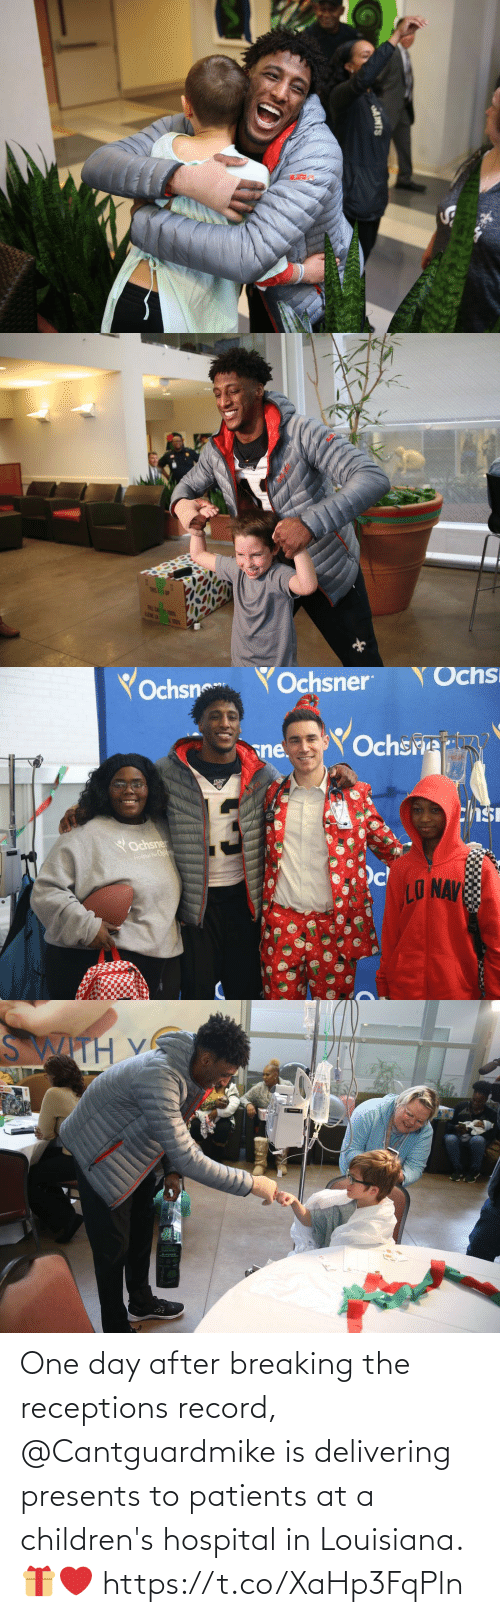 presents: AINTS   TRIS! 1P  FRLE CA T  LENE LA   Yochsn  YOchsner  Ochs  Ochsre  sne.  chsi  YOchsner  Hospai For Childwan  LO NAV   SWITH V One day after breaking the receptions record, @Cantguardmike is delivering presents to patients at a children's hospital in Louisiana. 🎁❤️ https://t.co/XaHp3FqPln